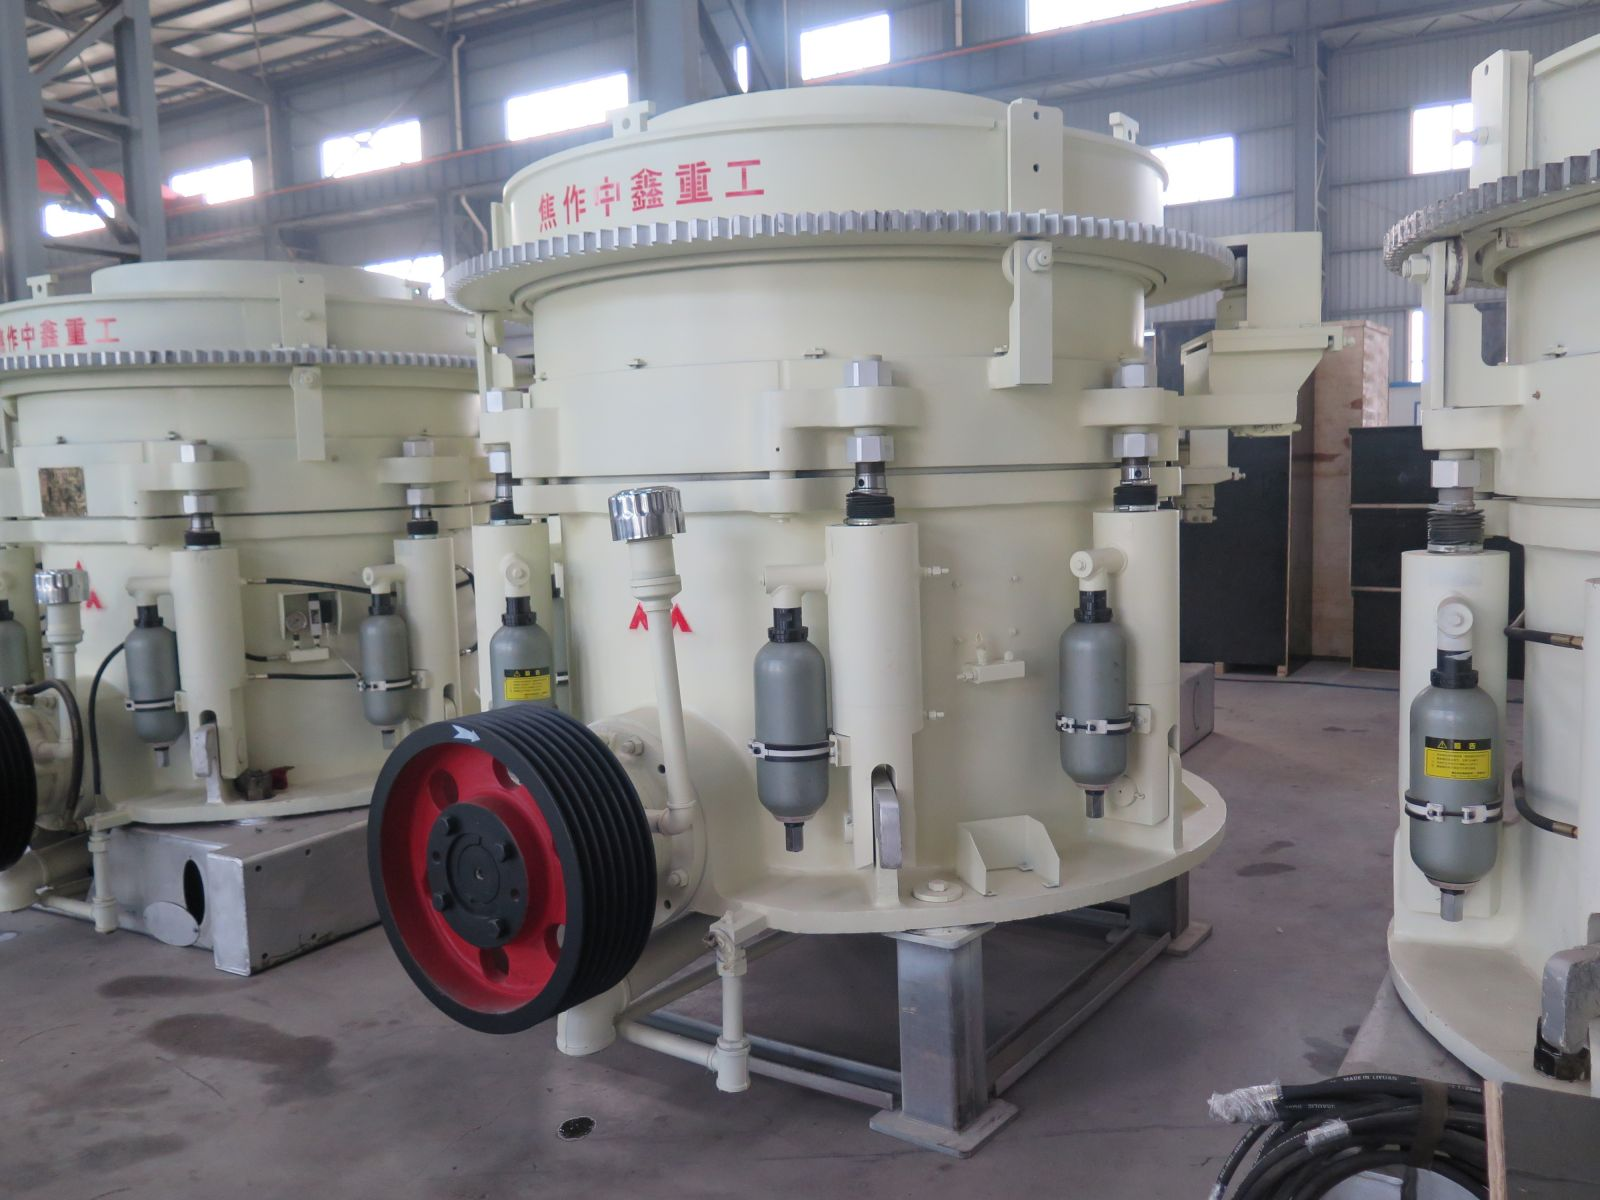 It is imperative to regulate the safe operation of the cone crusher